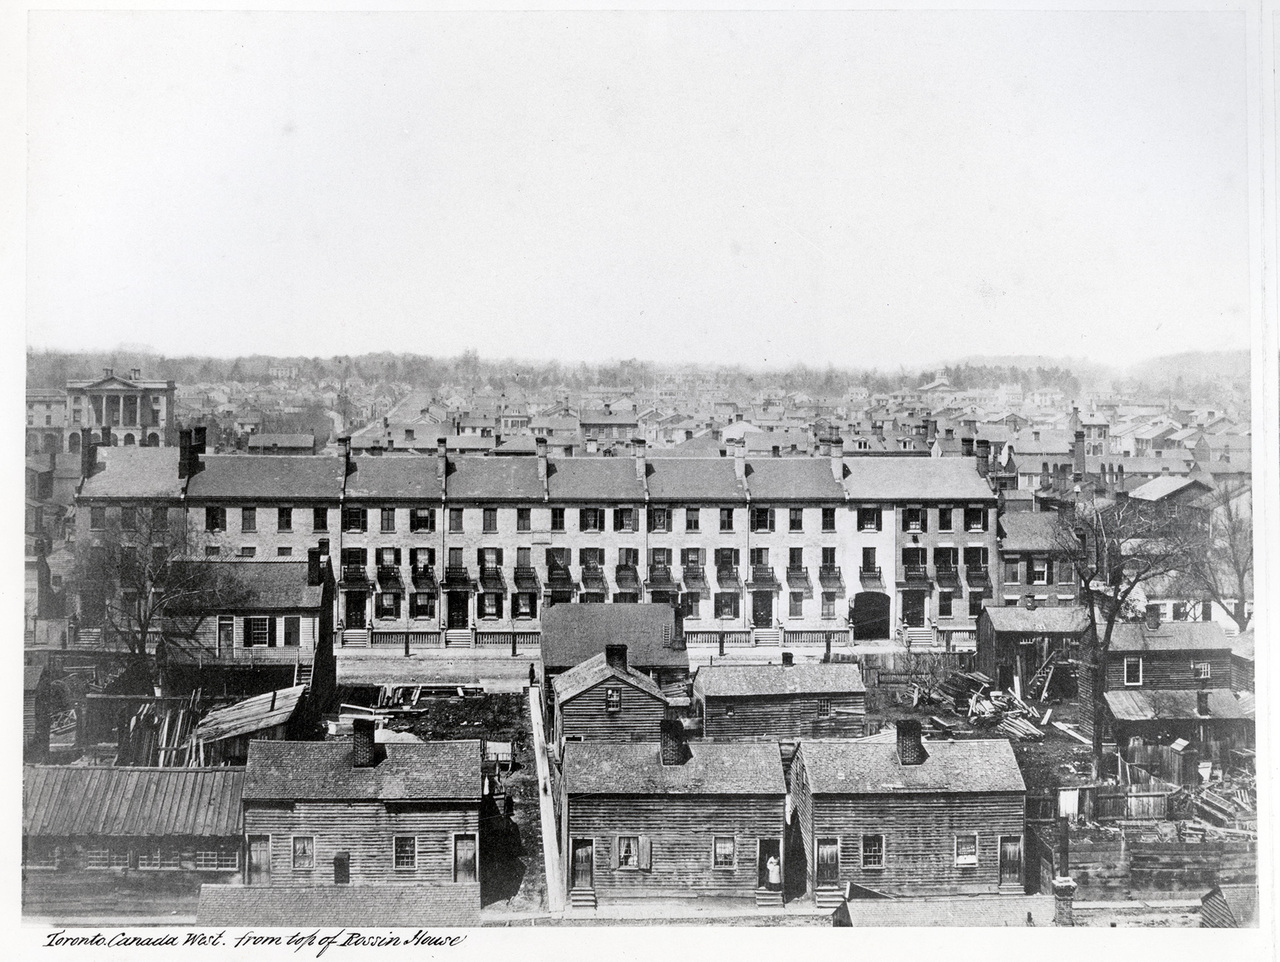 Toronto from the top of the Rossin House Hotel, looking north